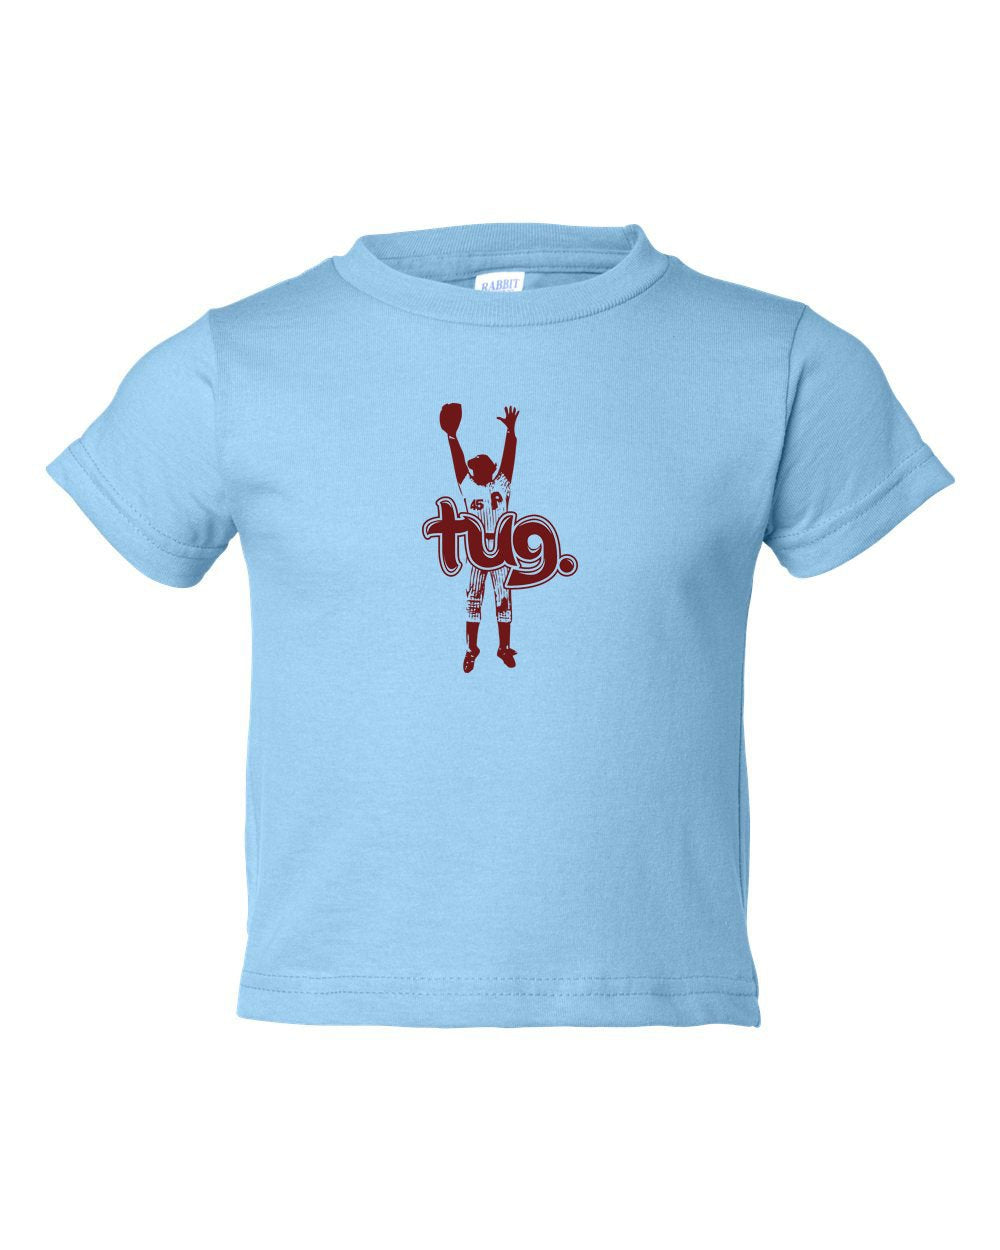 Tug TODDLER T-Shirt